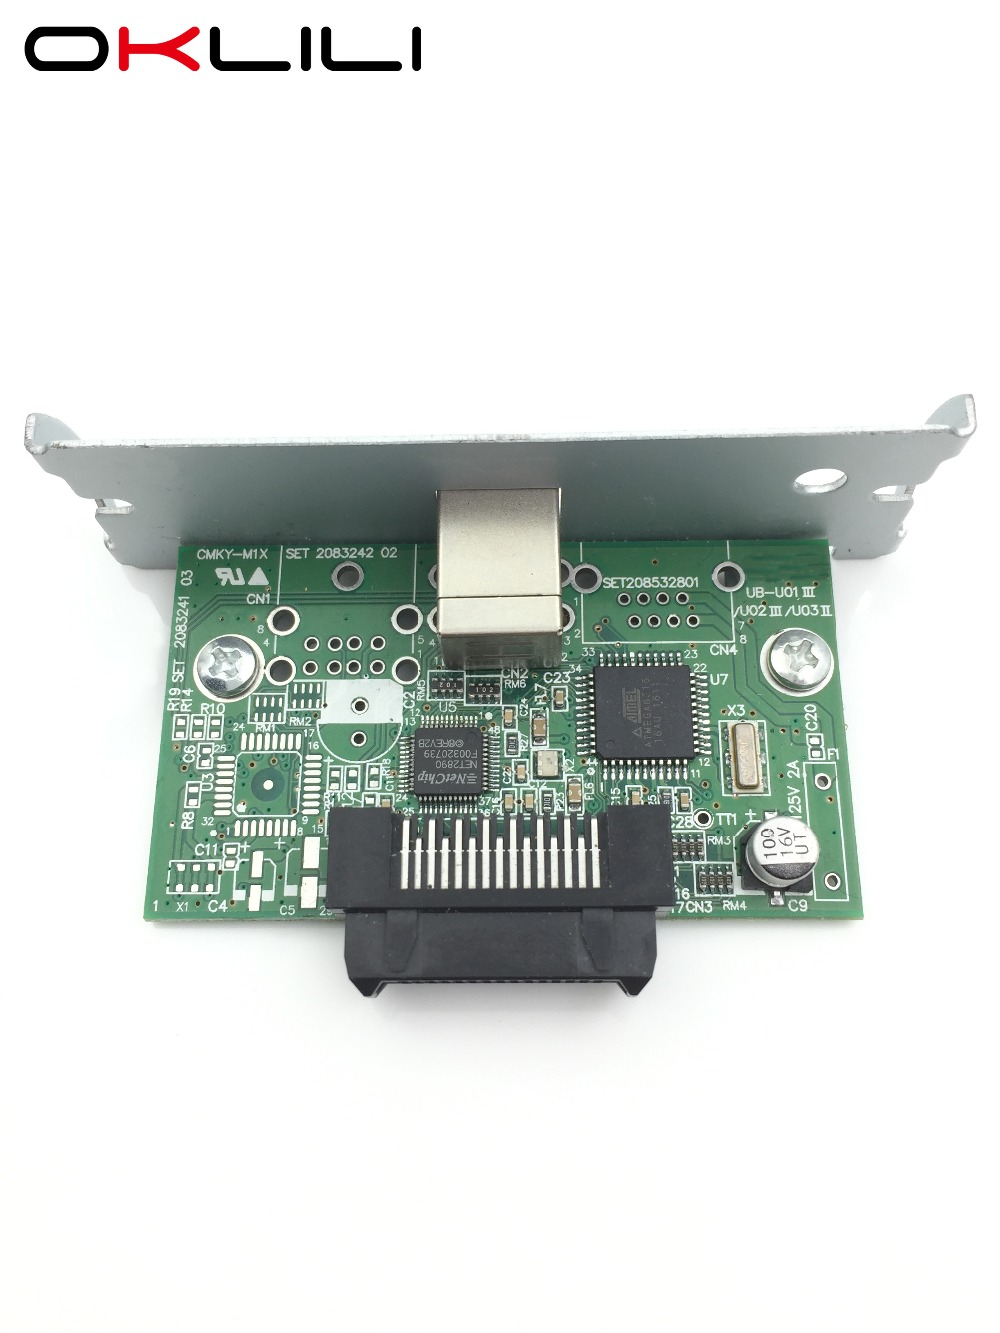 NEW C32C824131 M148E USB Port Interface Card for Epson TM-H5000II H6000IV J7000 J7100 J7500 J7600 L90 T70 T88IV T88V T90 U220 original new thermal head print head printhead for epson tm t88v tm t885 tm t88v t885 replace part 2141001 2131885 2138822 m244a